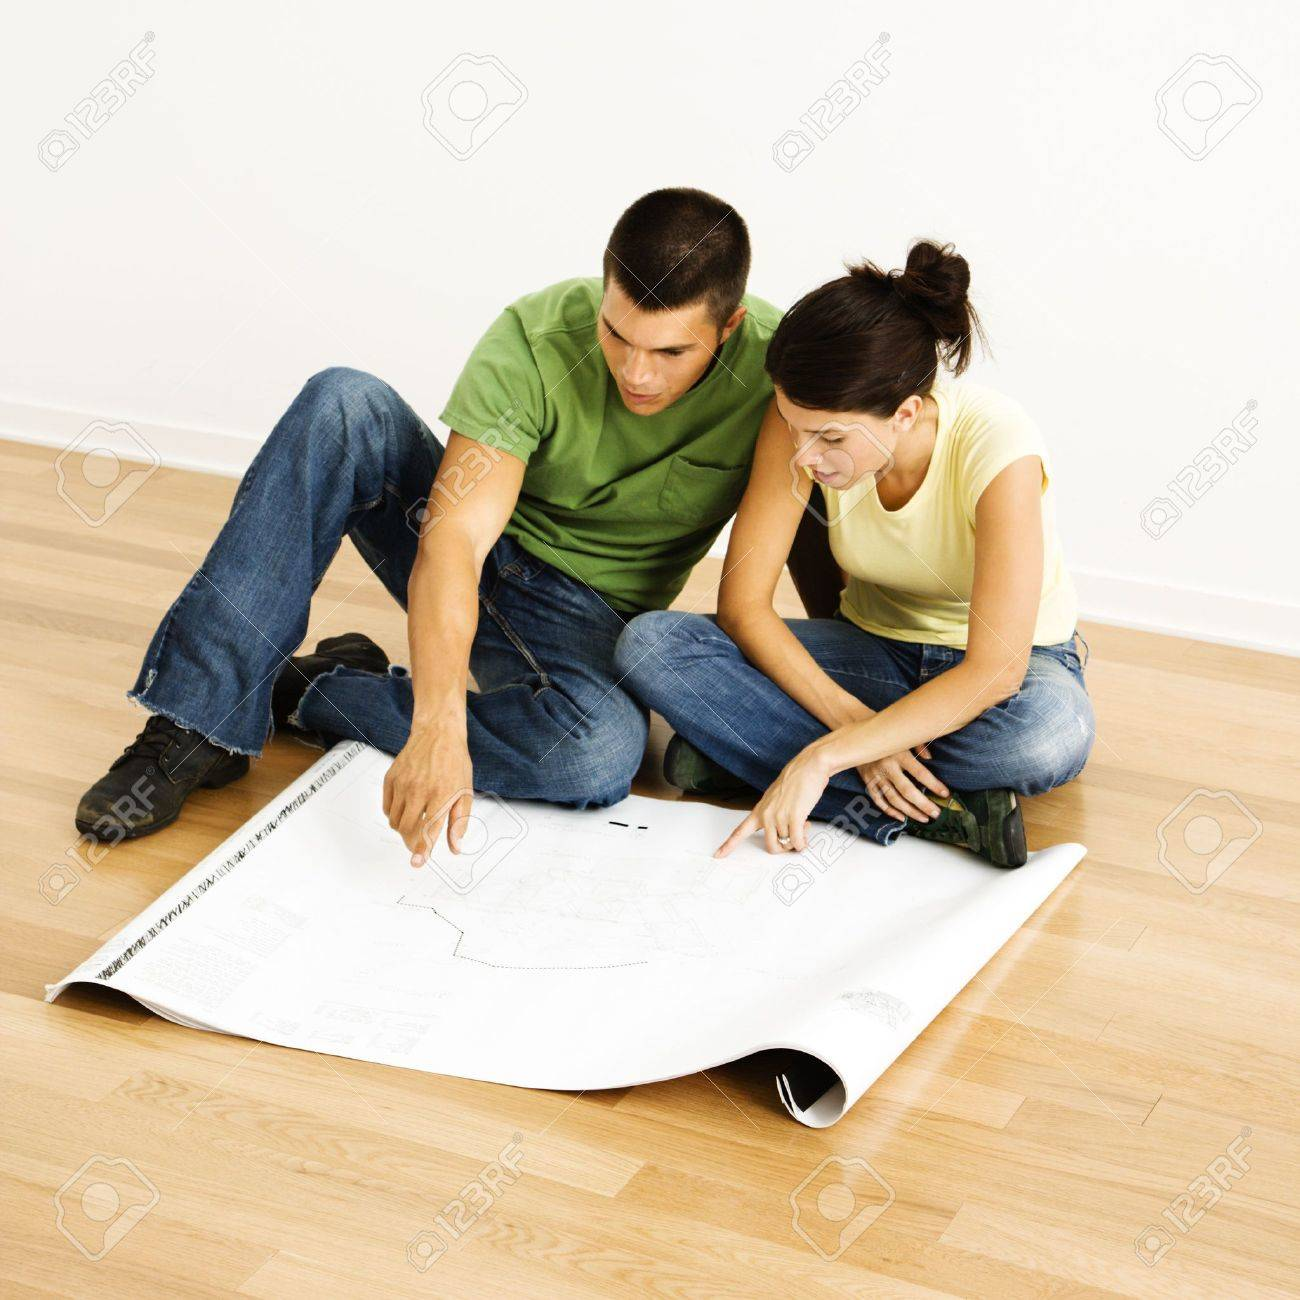 ttractive Young dult ouple Looking t House Plans. Stock Photo ... - ^